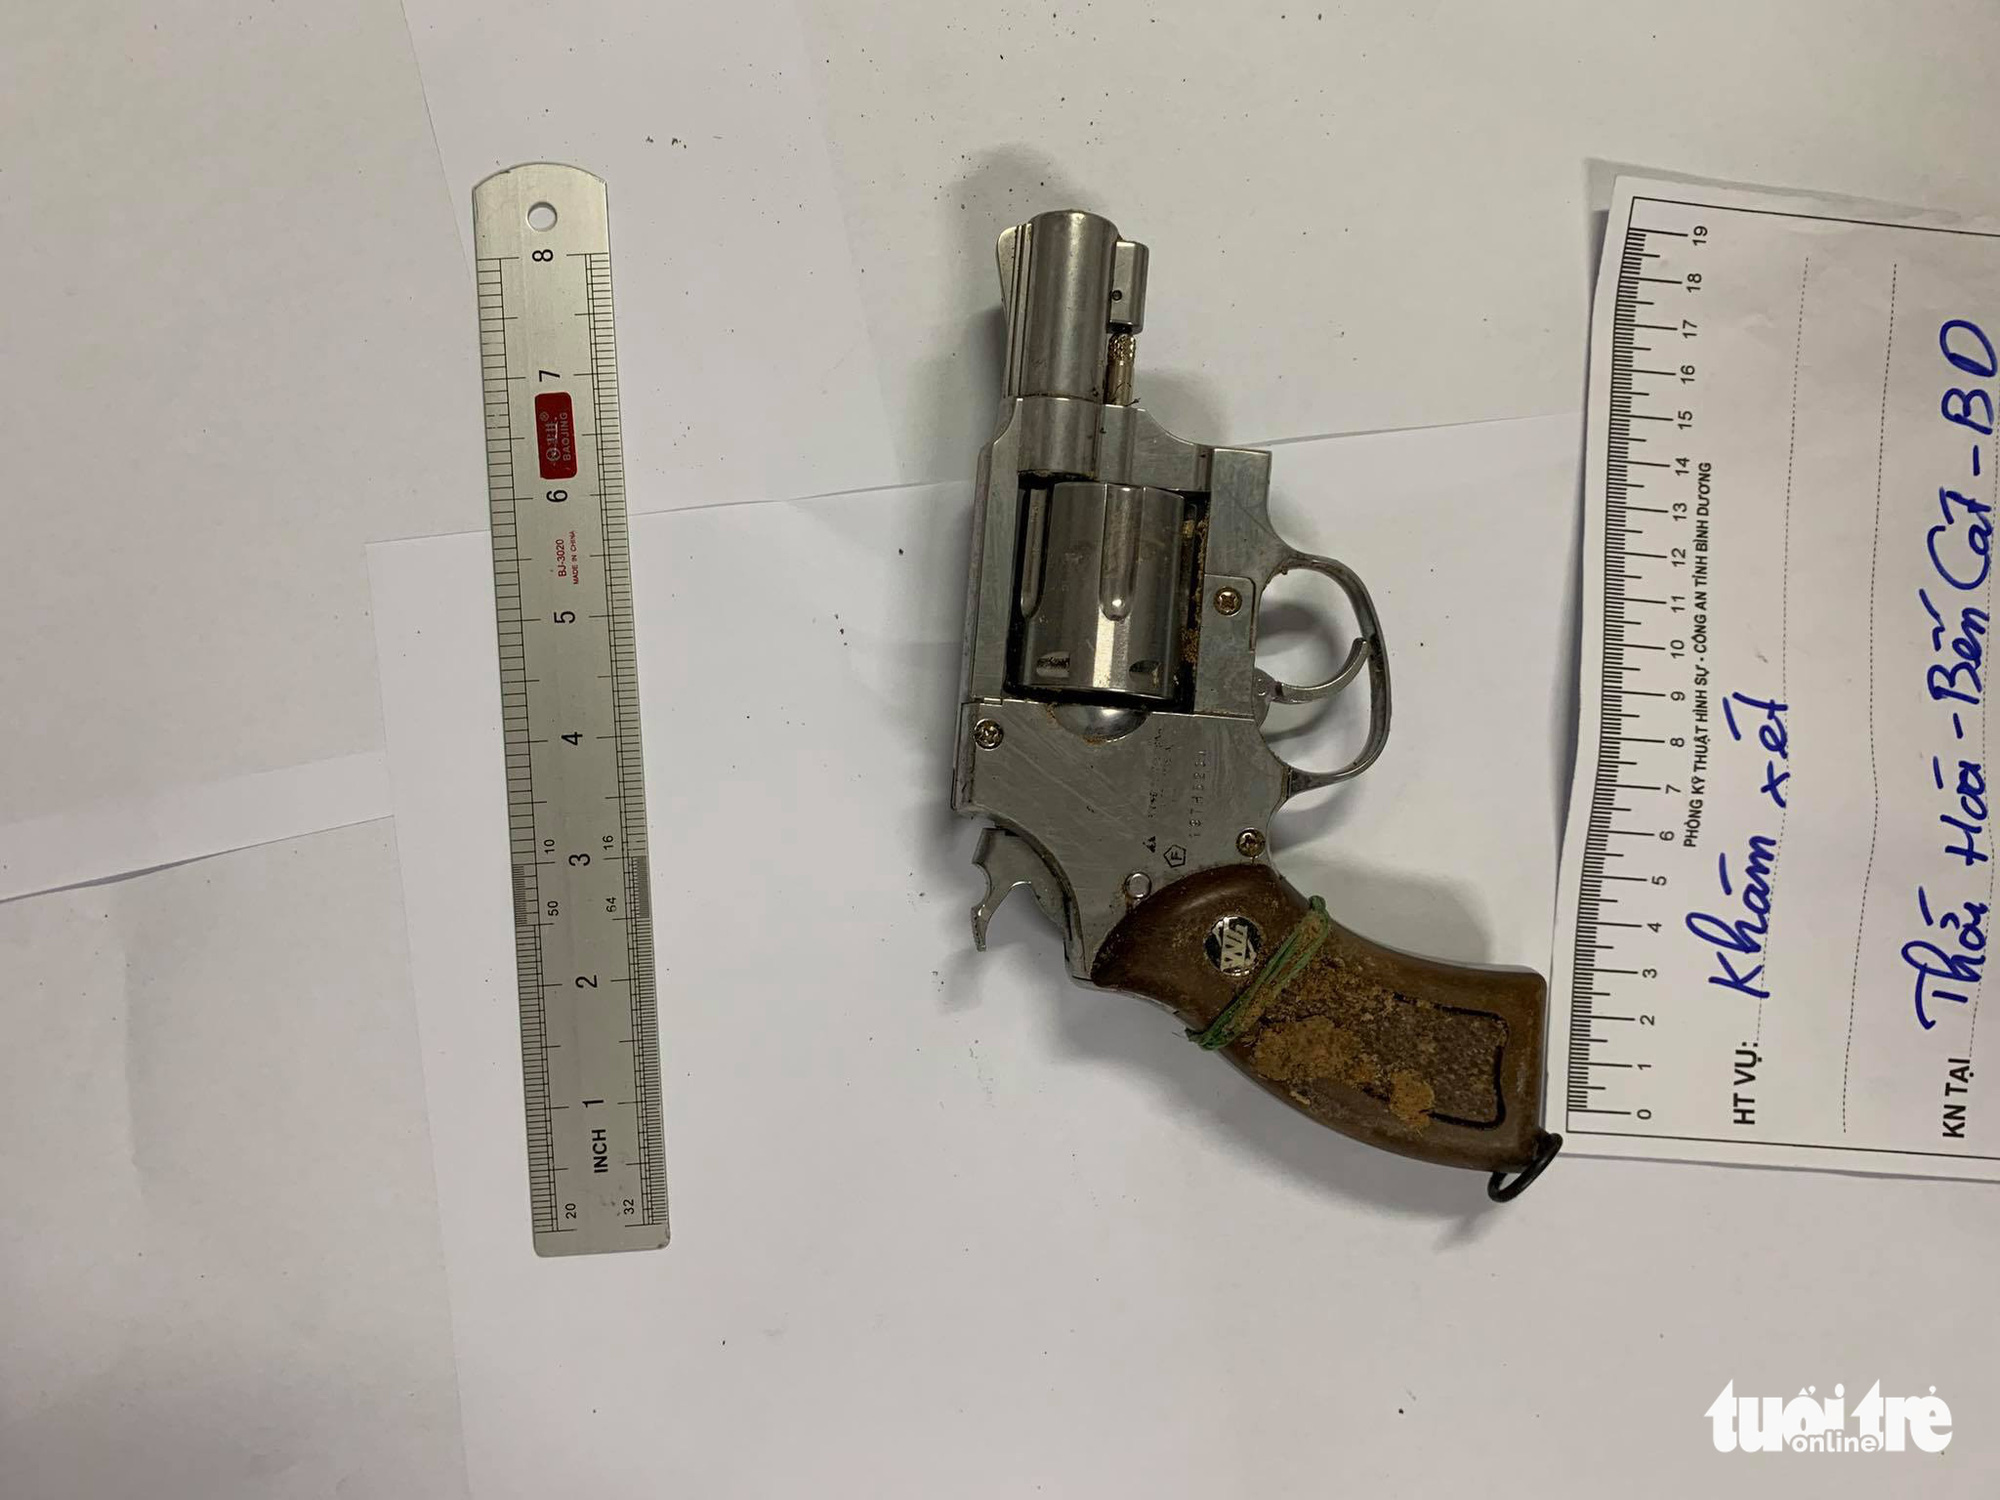 The pistol that Tran Cong Duc used to rob a bank in Binh Duong Province, Vietnam, November 18, 2020. Photo: A.X. / Tuoi Tre